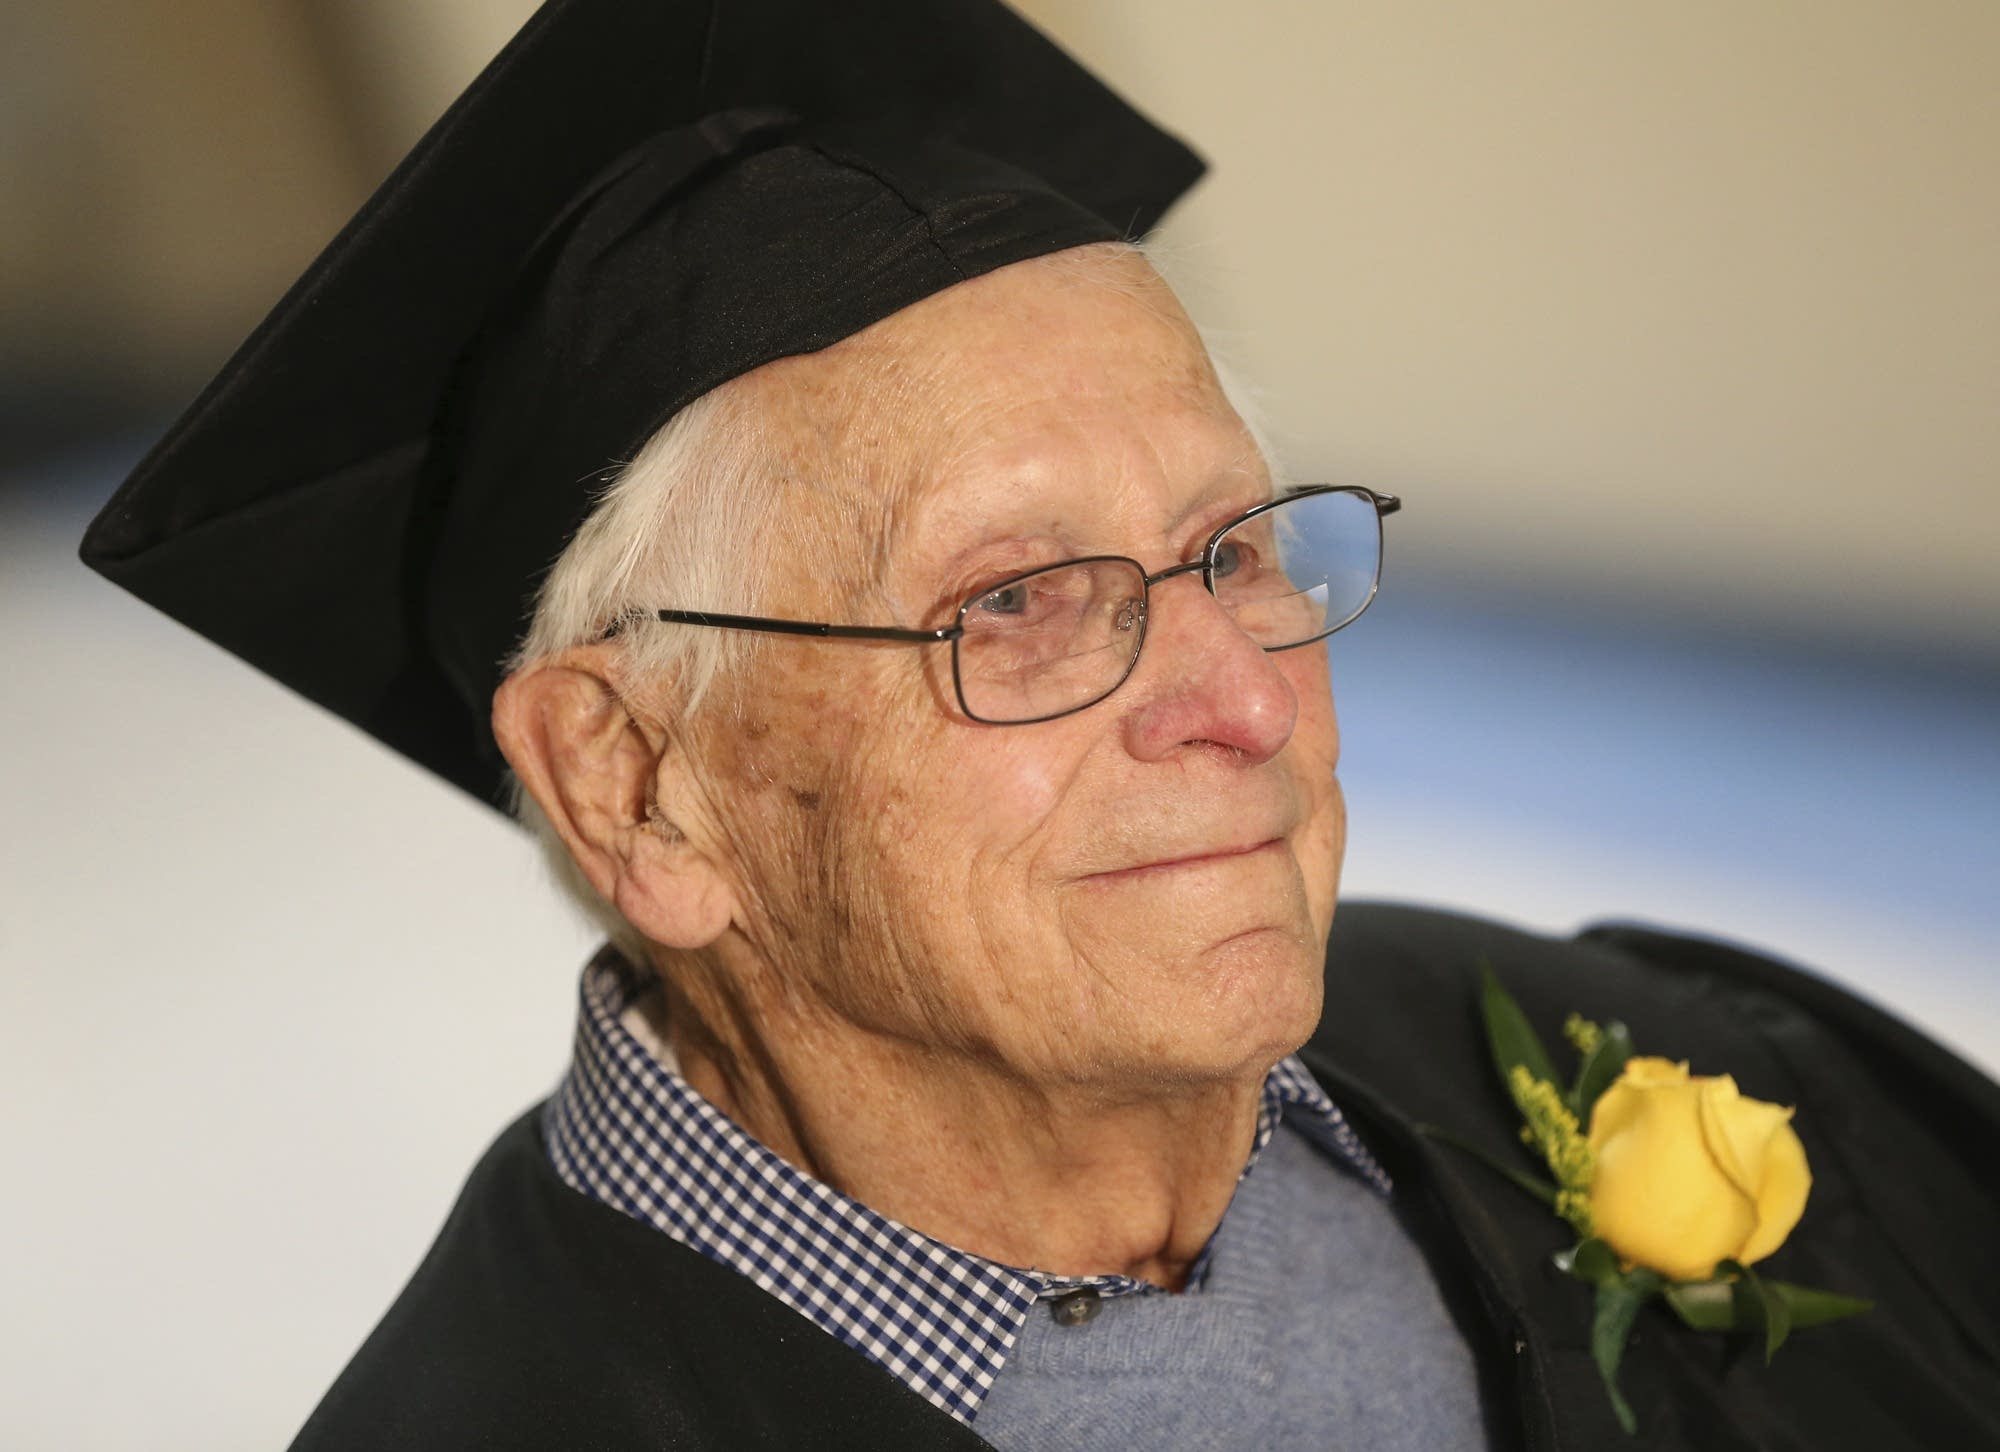 Leon Swendsen received his diploma at age 102.